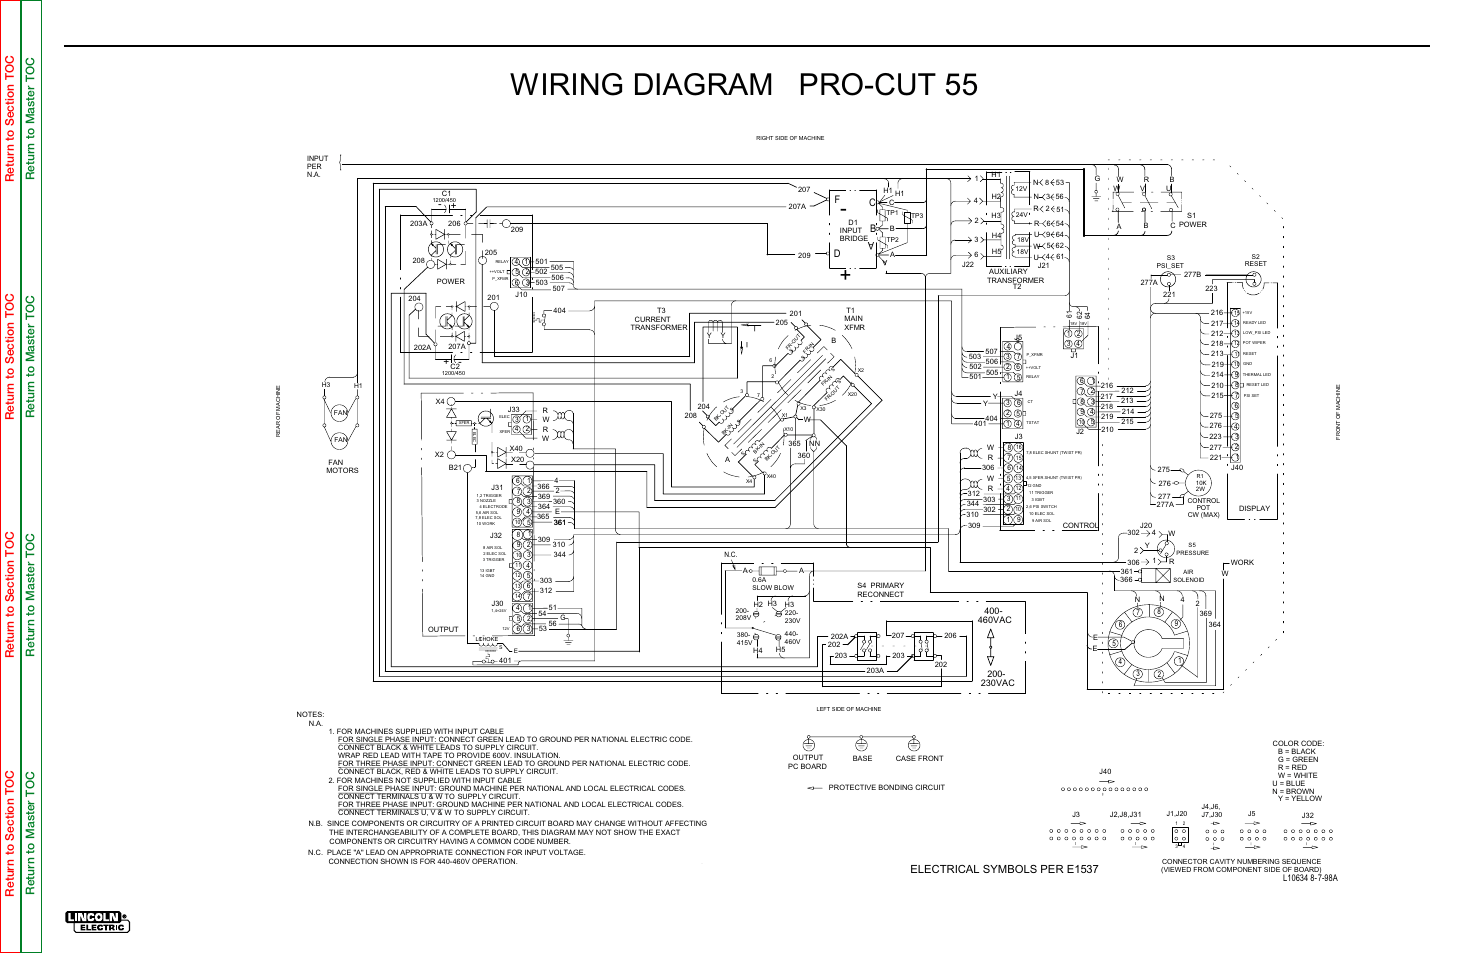 Wiring Diagram Pro Cut 55 Electrical Diagrams Wiring